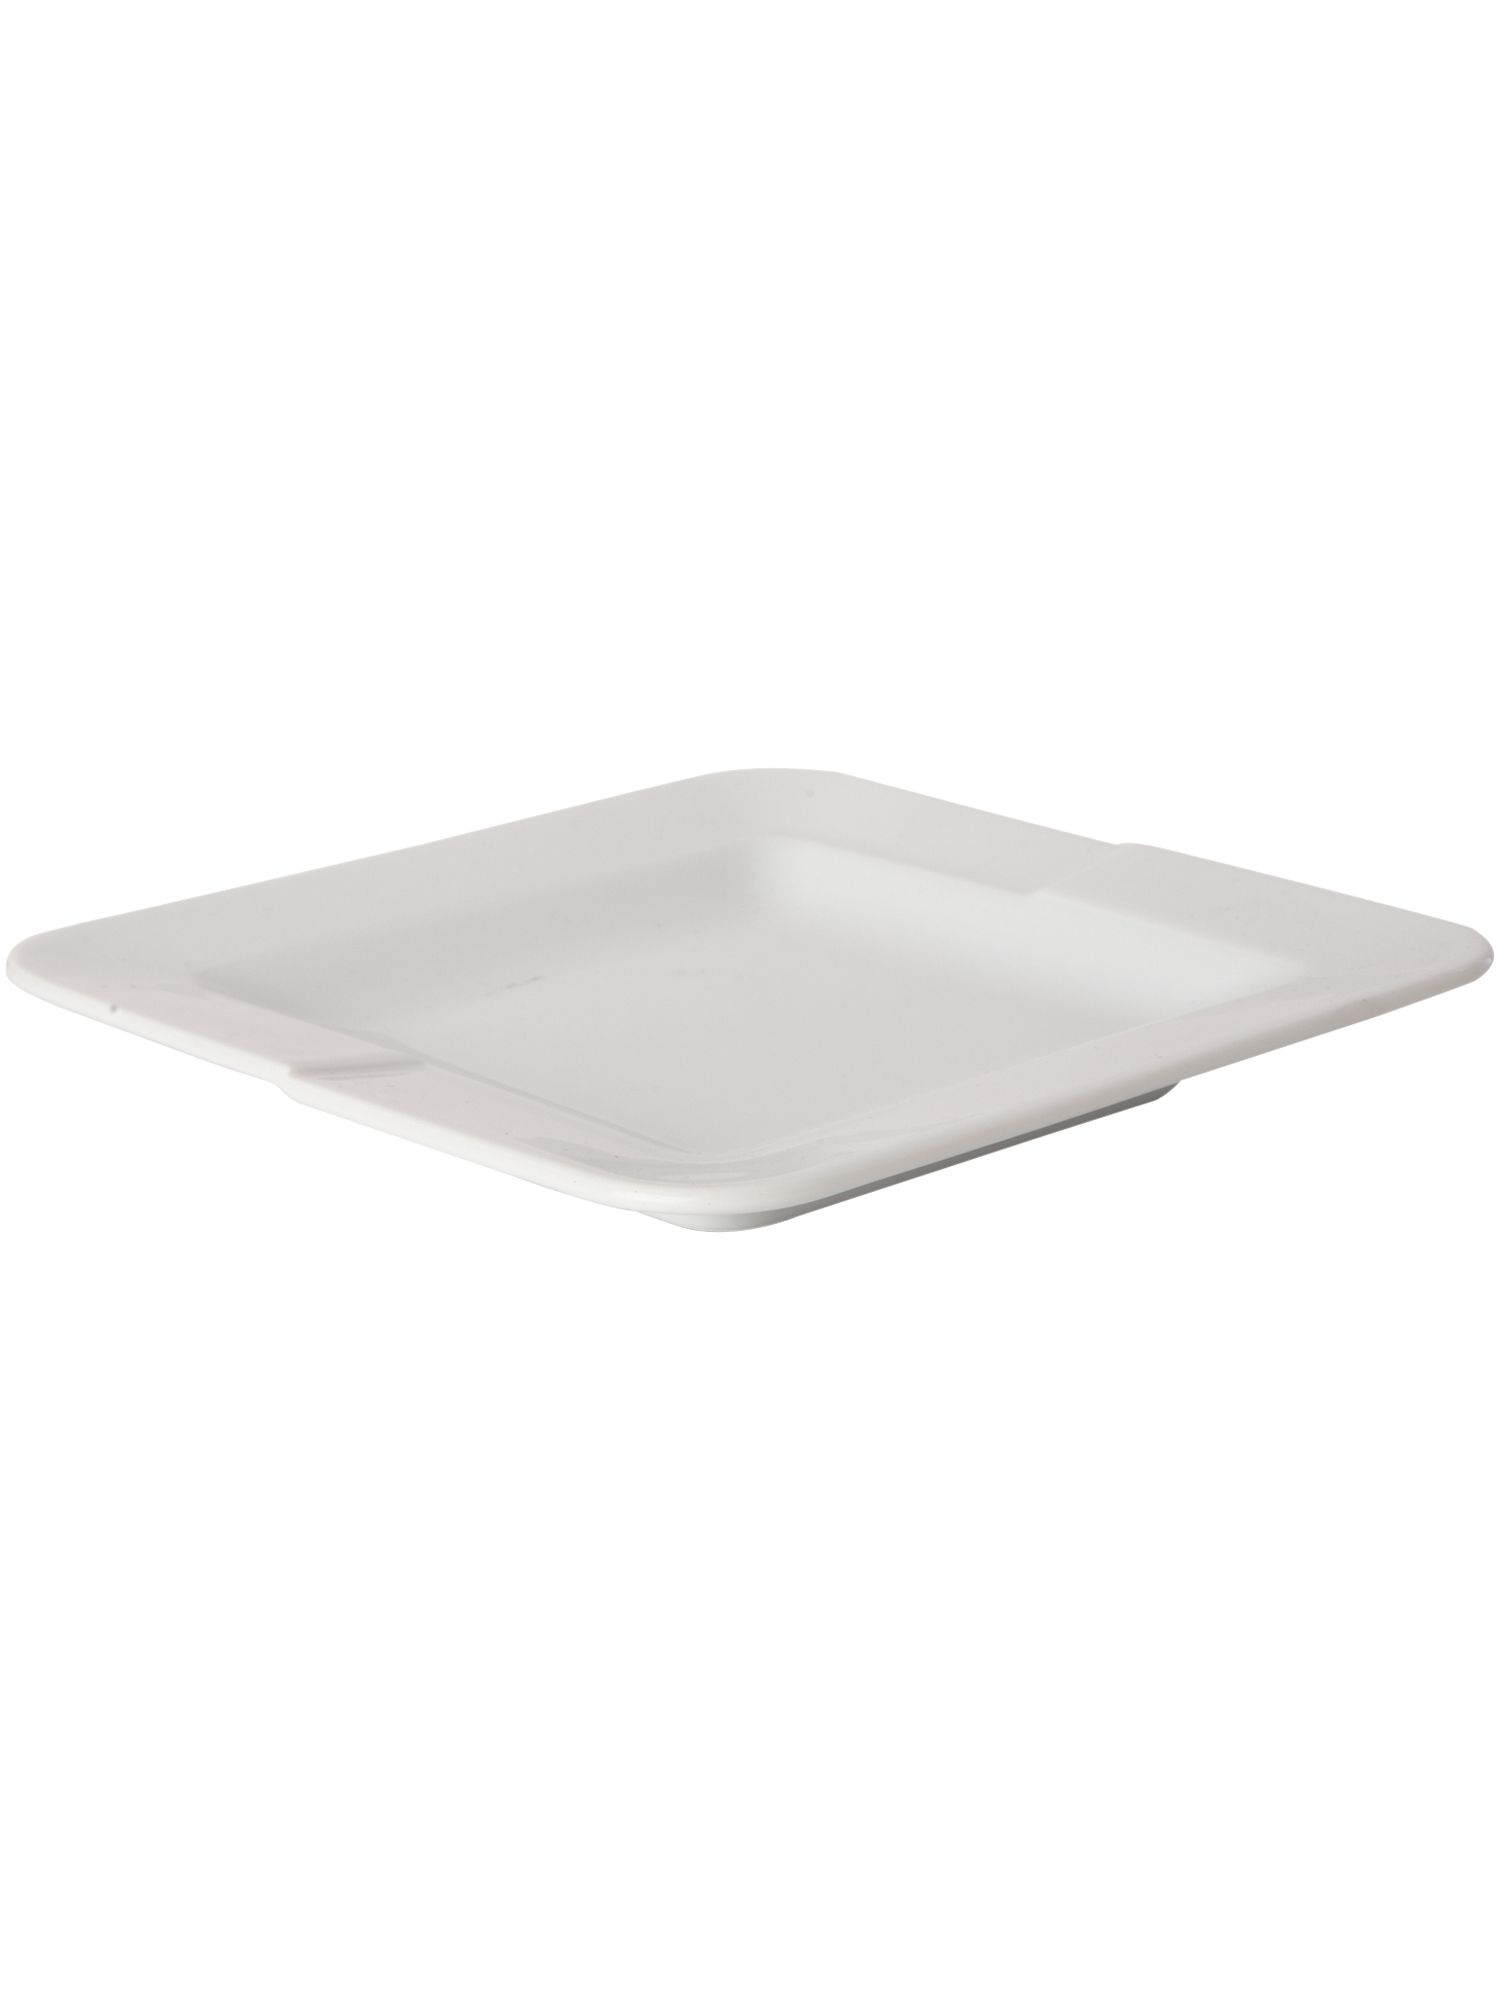 James Martin Dine Squares Tea Plate